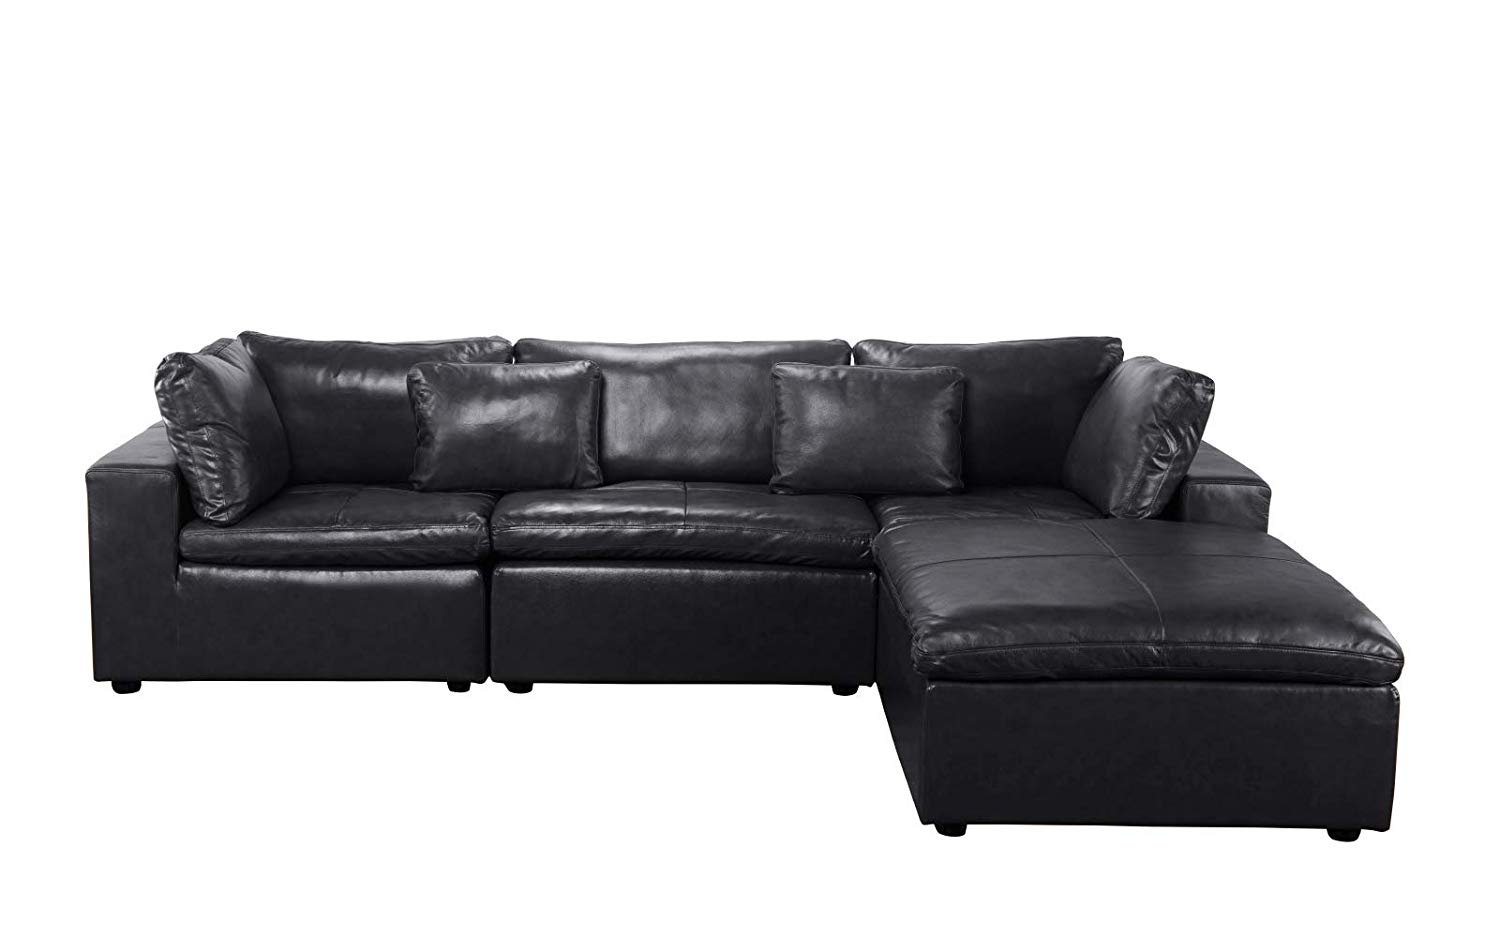 Large Leather Sectional Sofa L Shape Couch With Wide Chaise Black